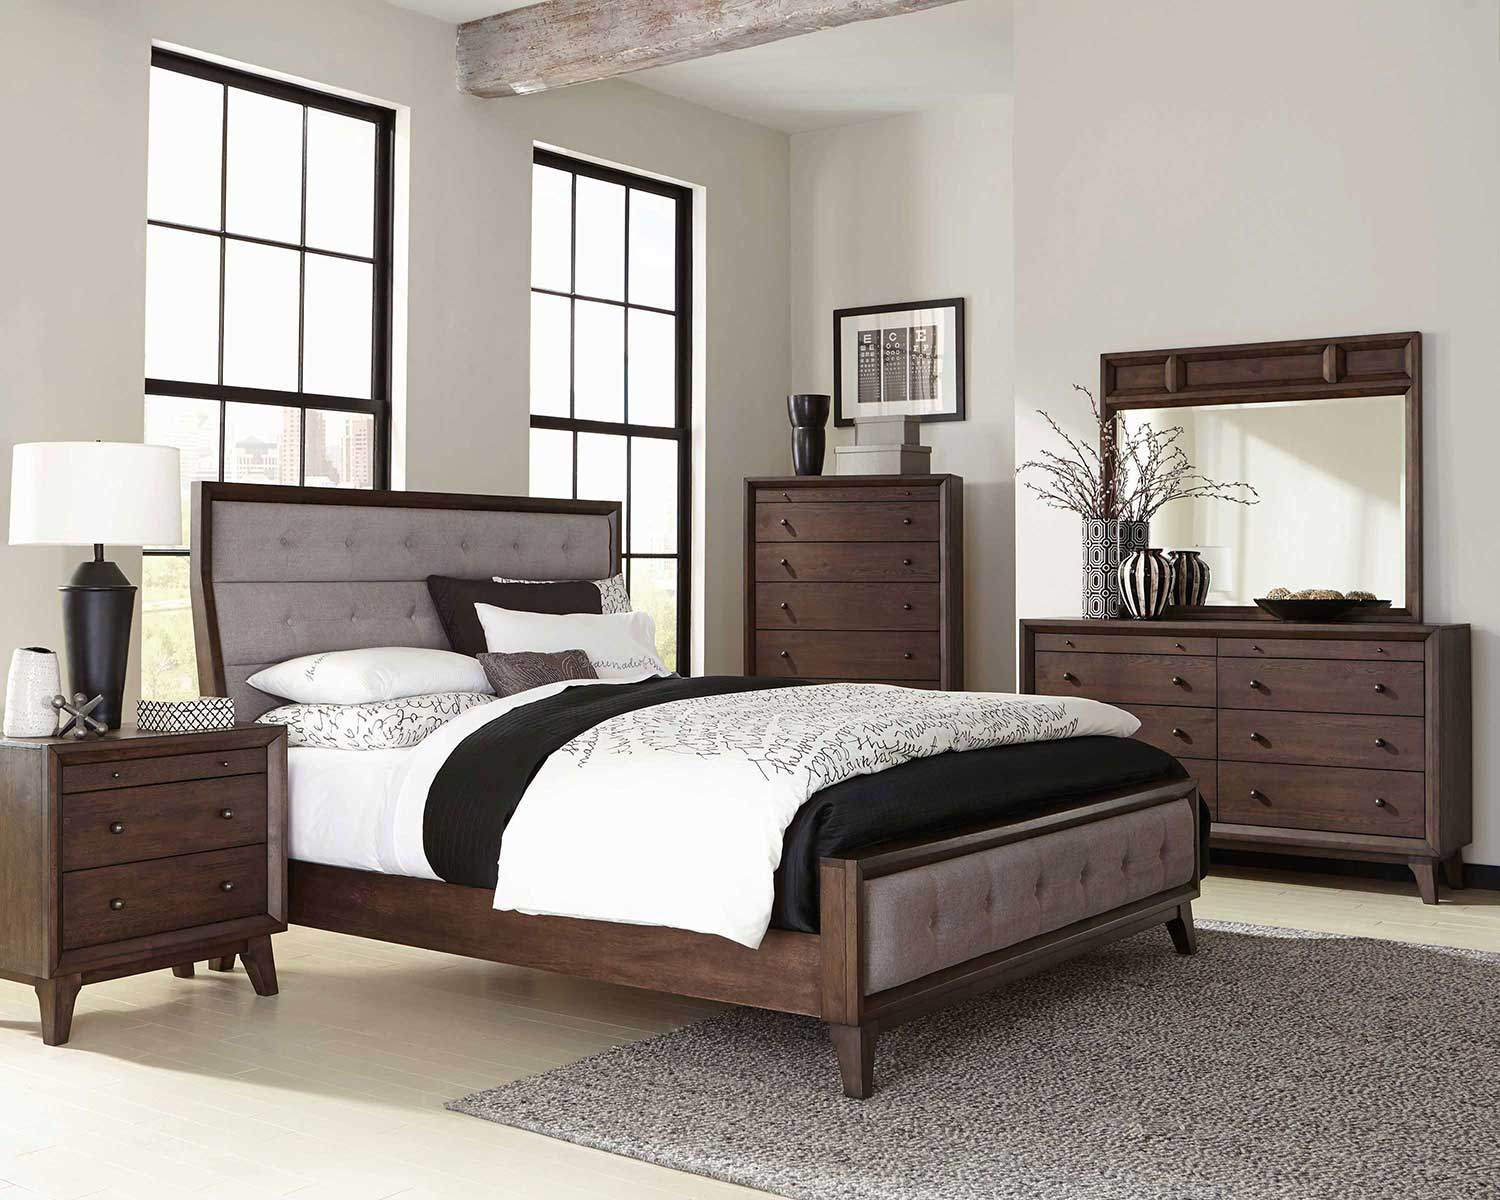 Coaster Bingham Upholstered Low Profile Bedroom Set   Brown Oak